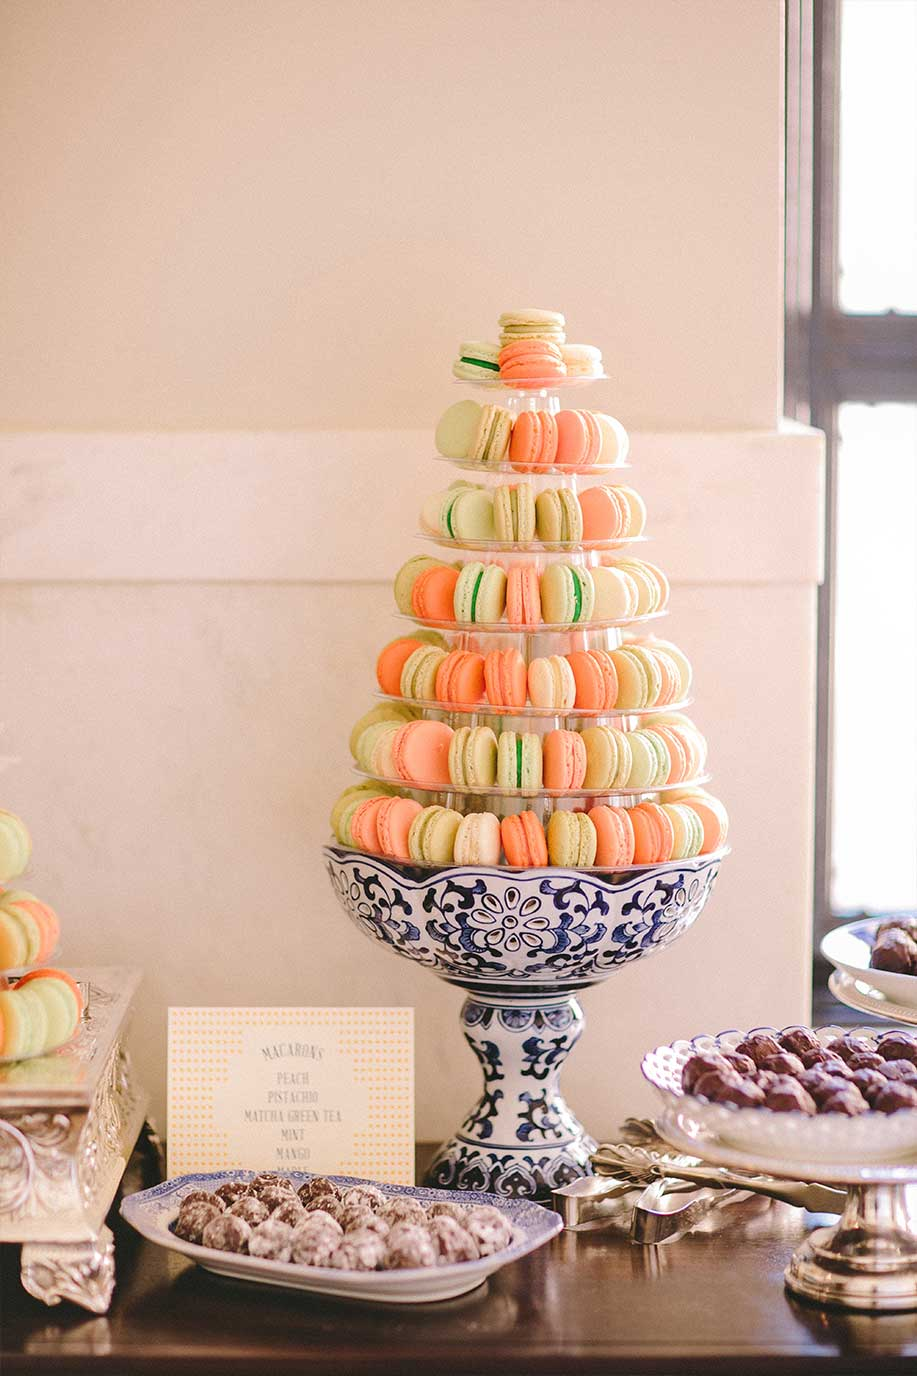 Wedding dessert table with macaroons and chocolate truffles on blue and white porcelain